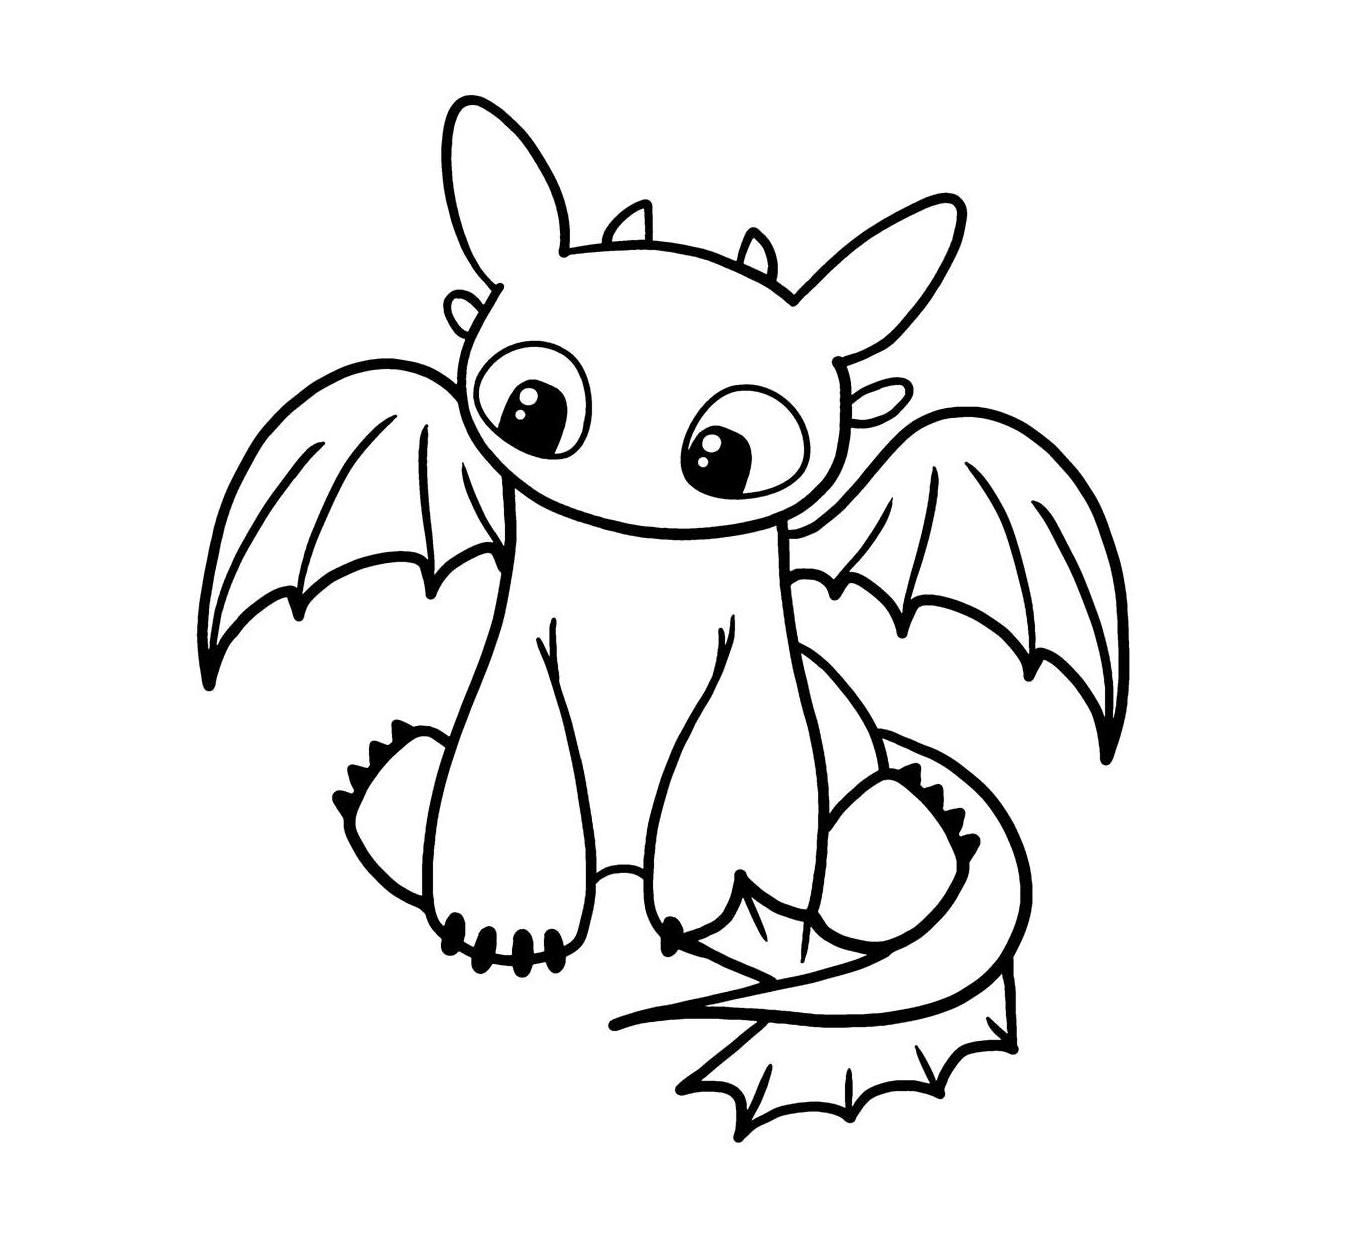 Cute Toothless Vinyl Decal How Train Your Dragon Dragon Coloring Page Cute Toothless